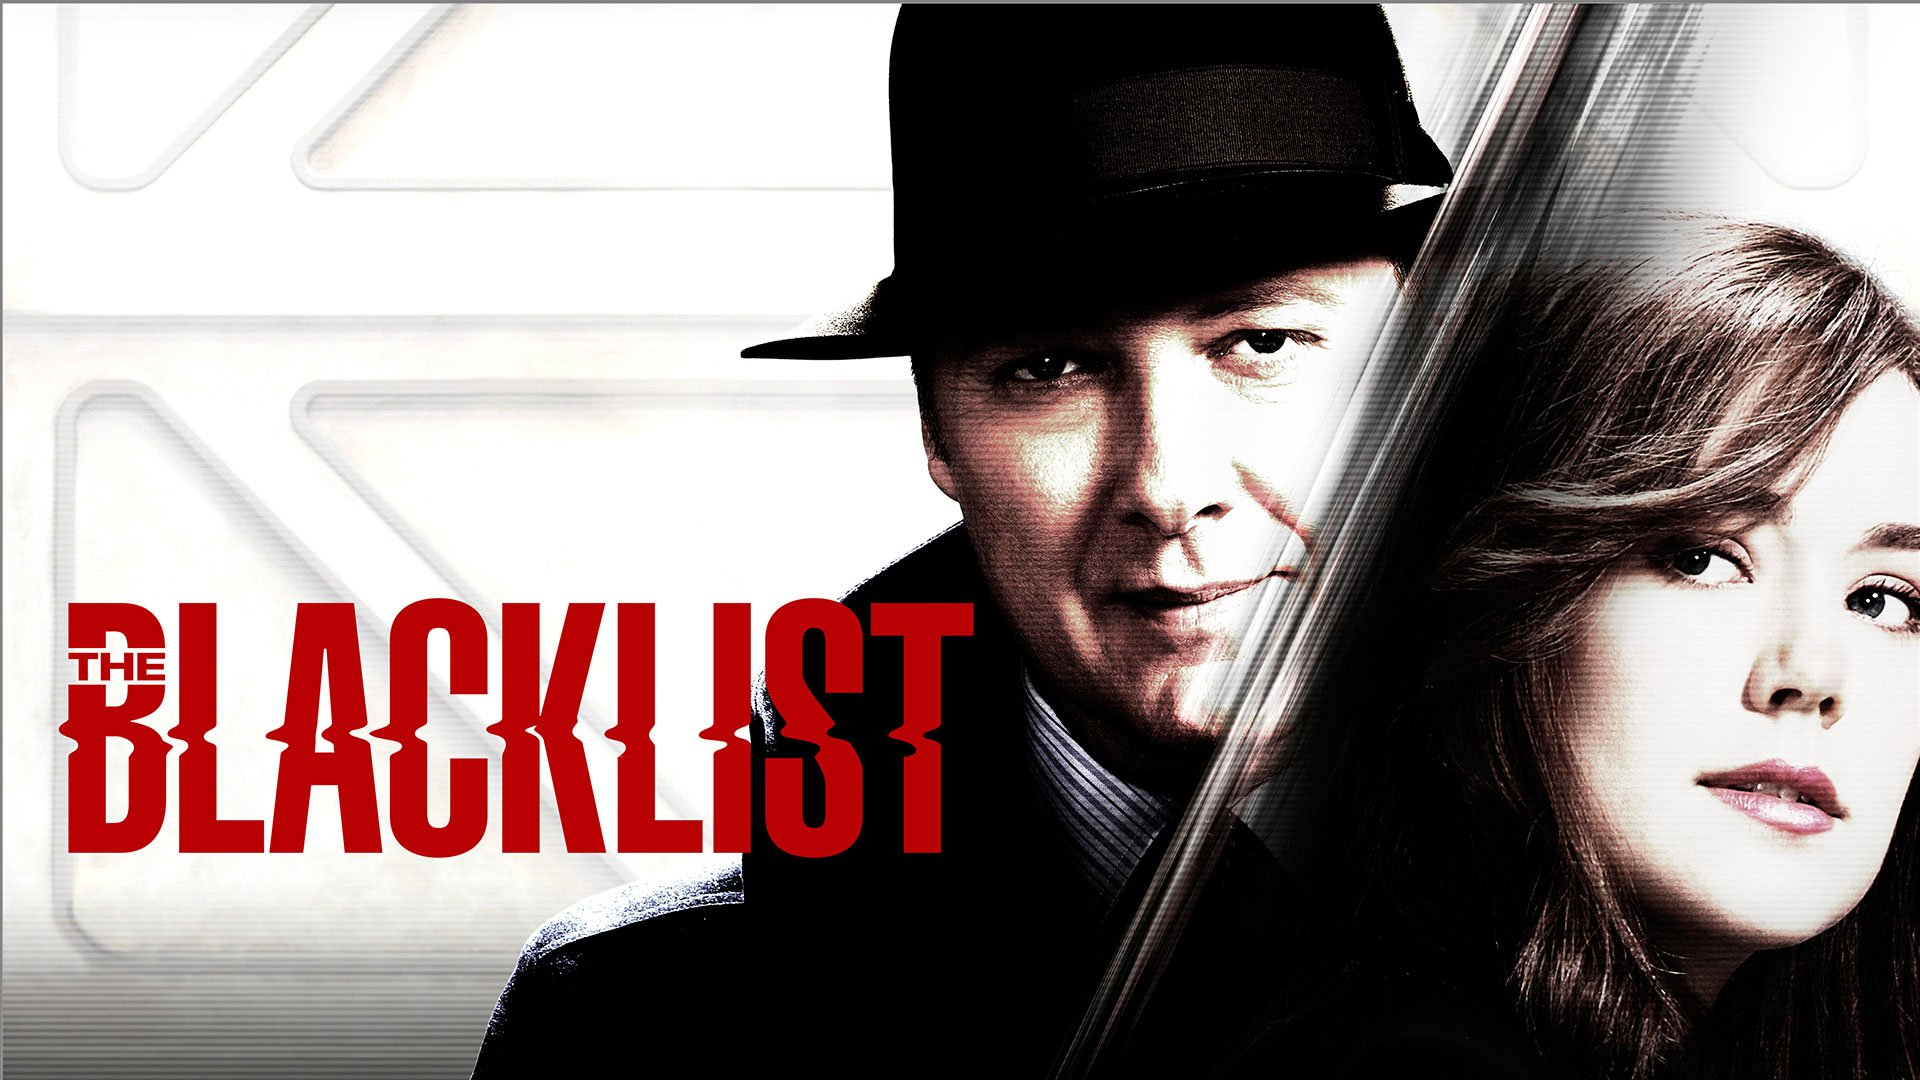 THE BLACKLIST crime drama mystery series wallpaper 1920x1080 1920x1080